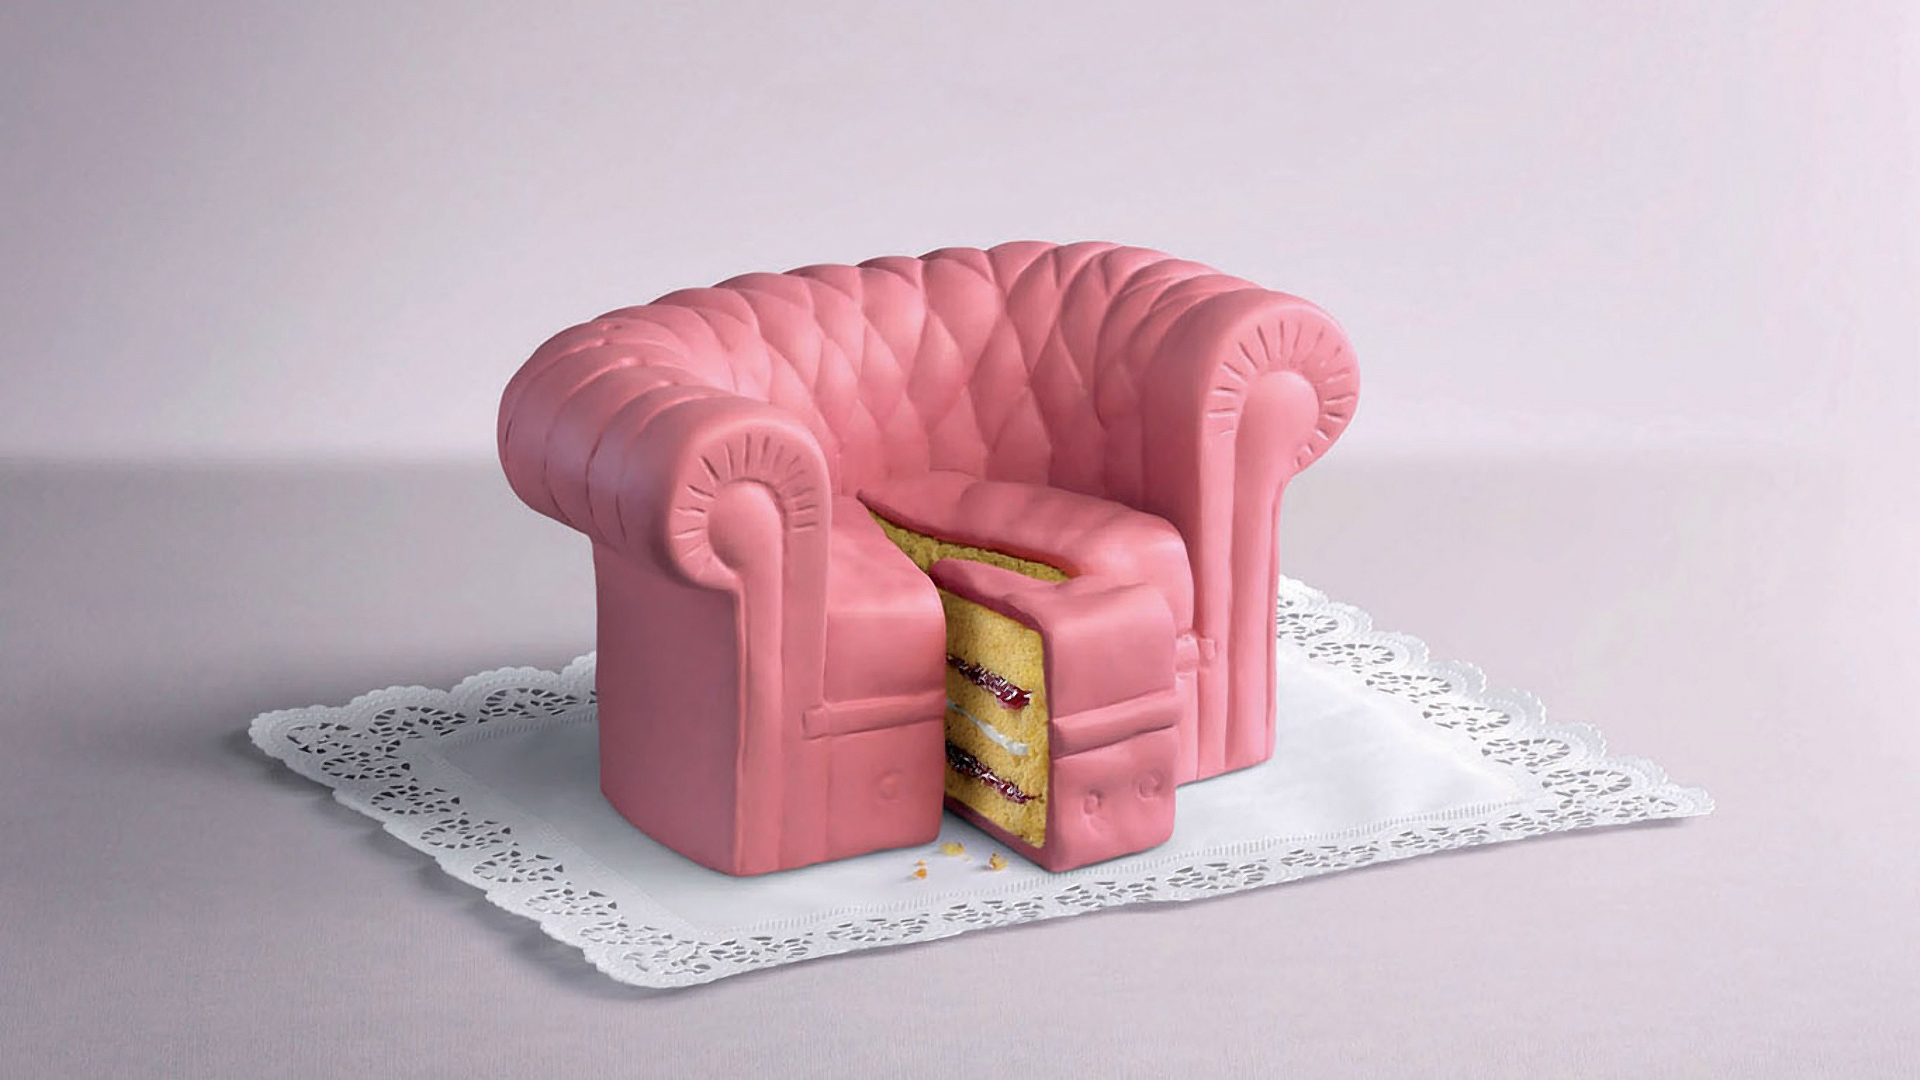 couch food cgi dessert HD Wallpaper